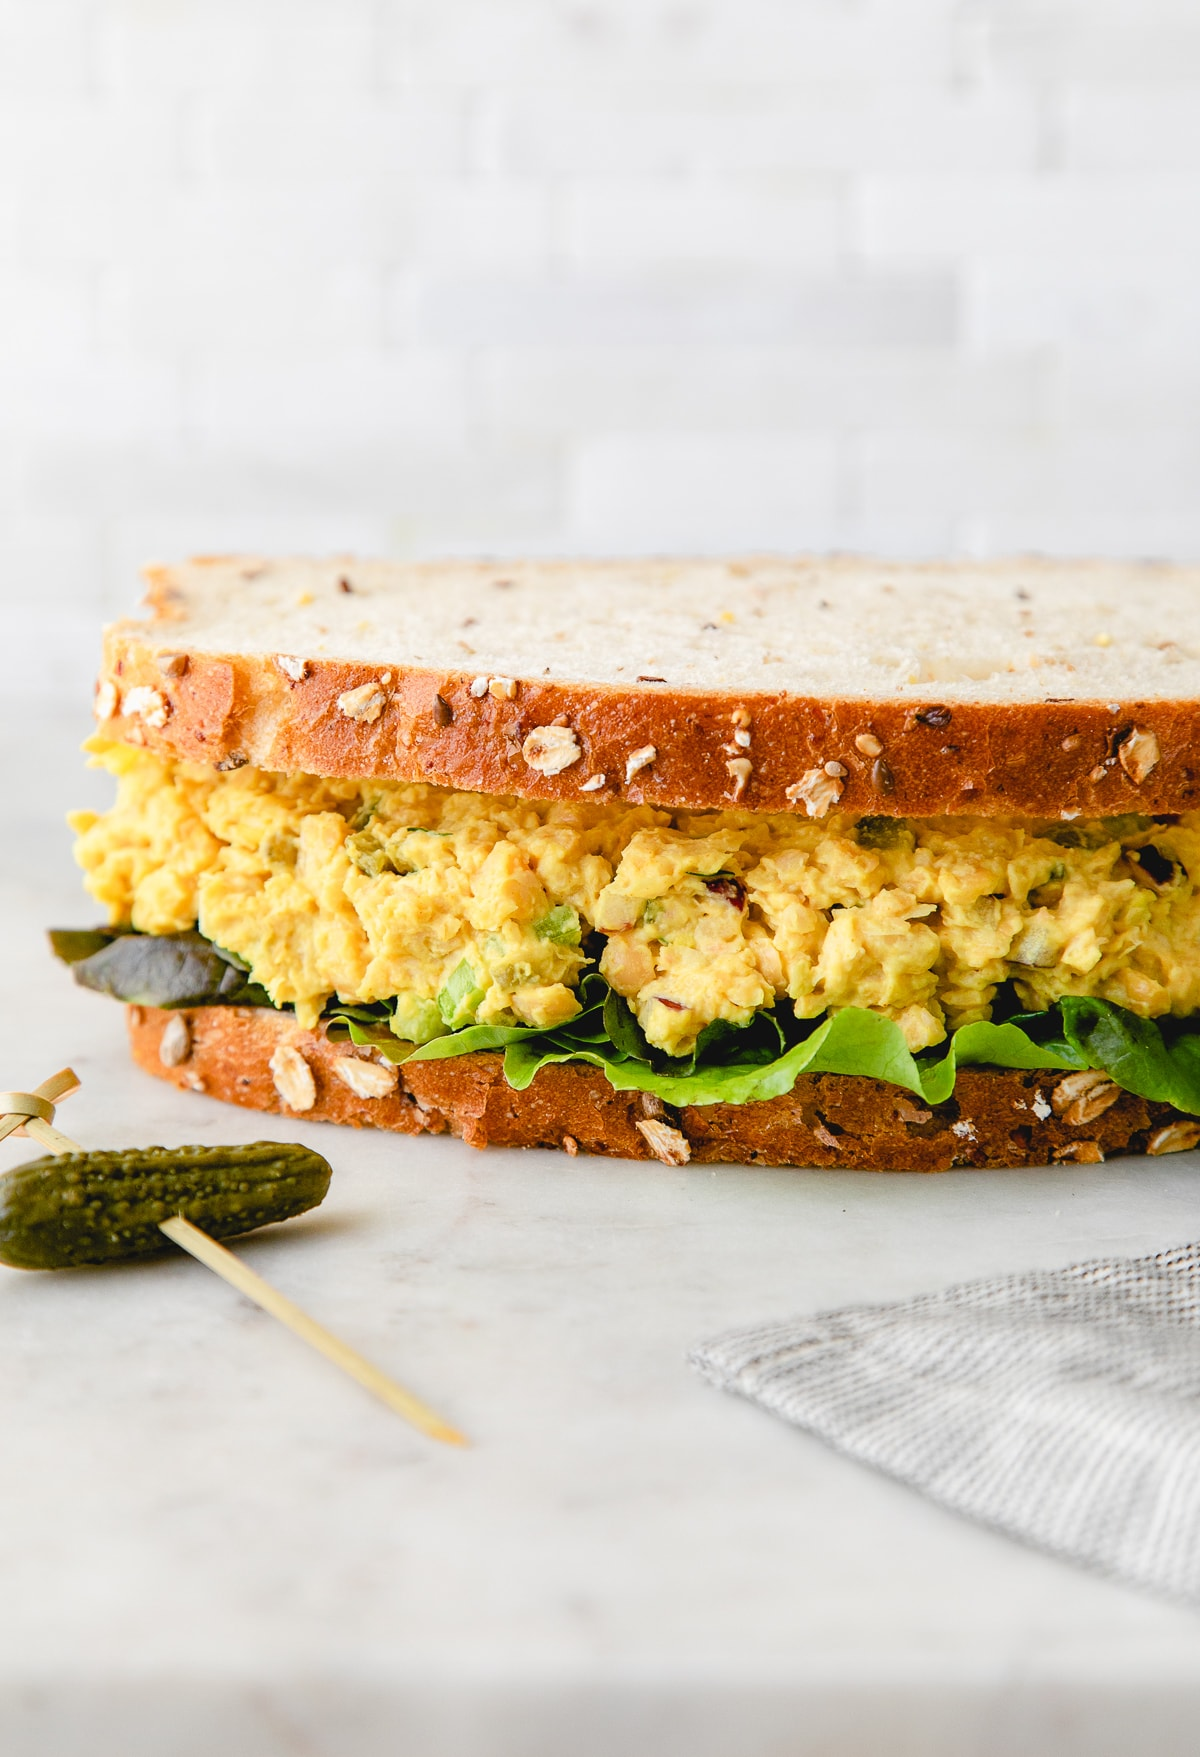 head on view of chickpea egg salad sandwich with items surrounding.